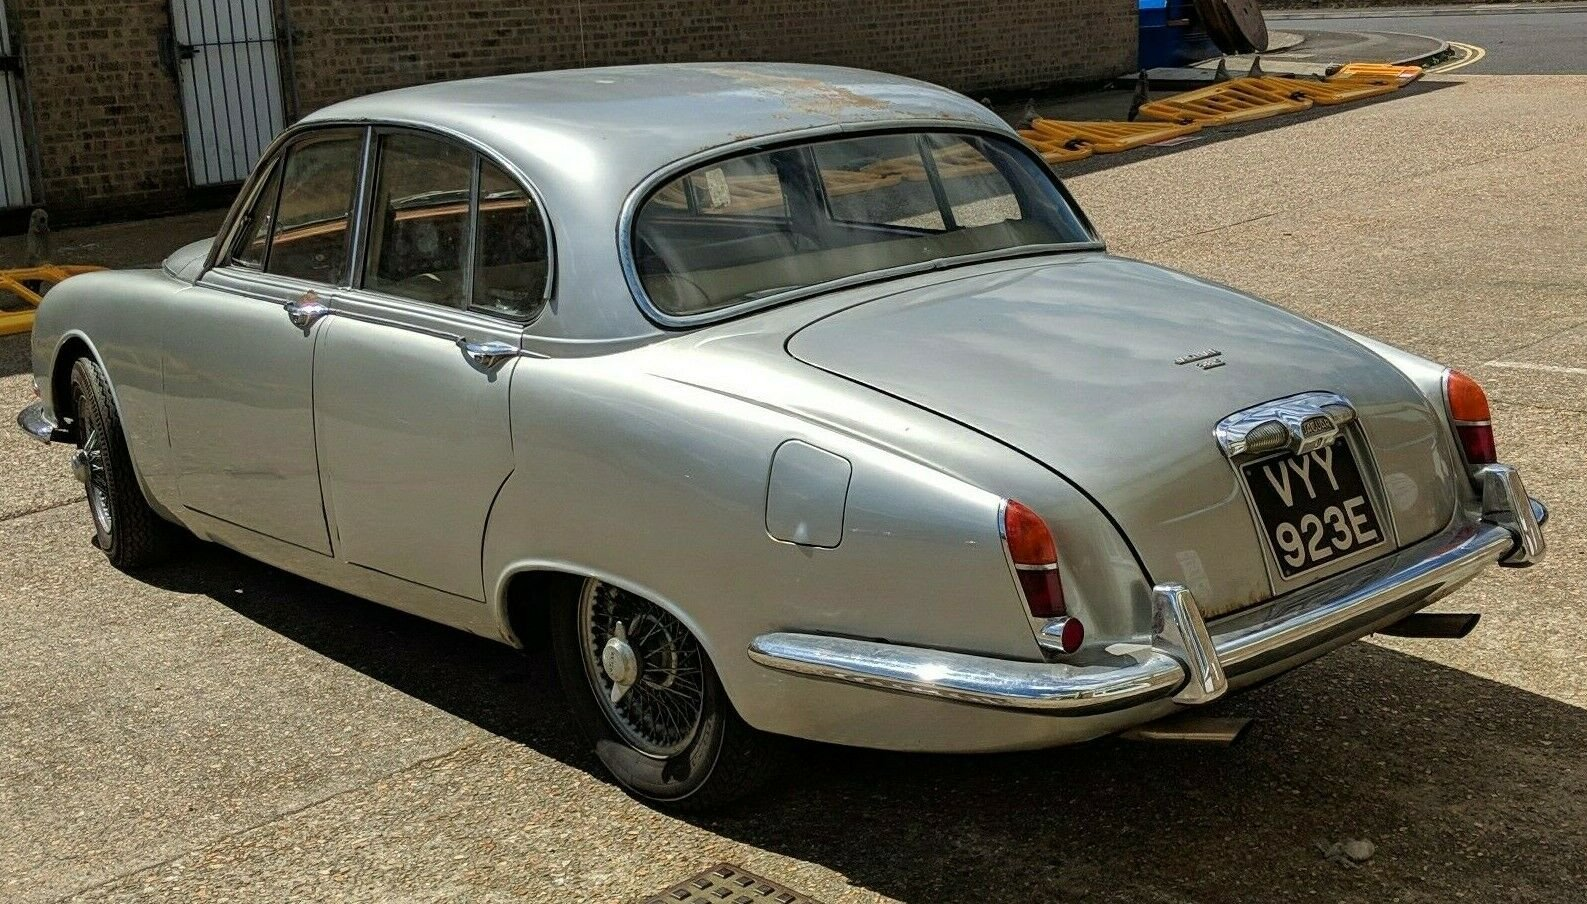 1966 Jaguar S-Type 3.8 Manual Right-Hand Drive For Sale (picture 2 of 6)